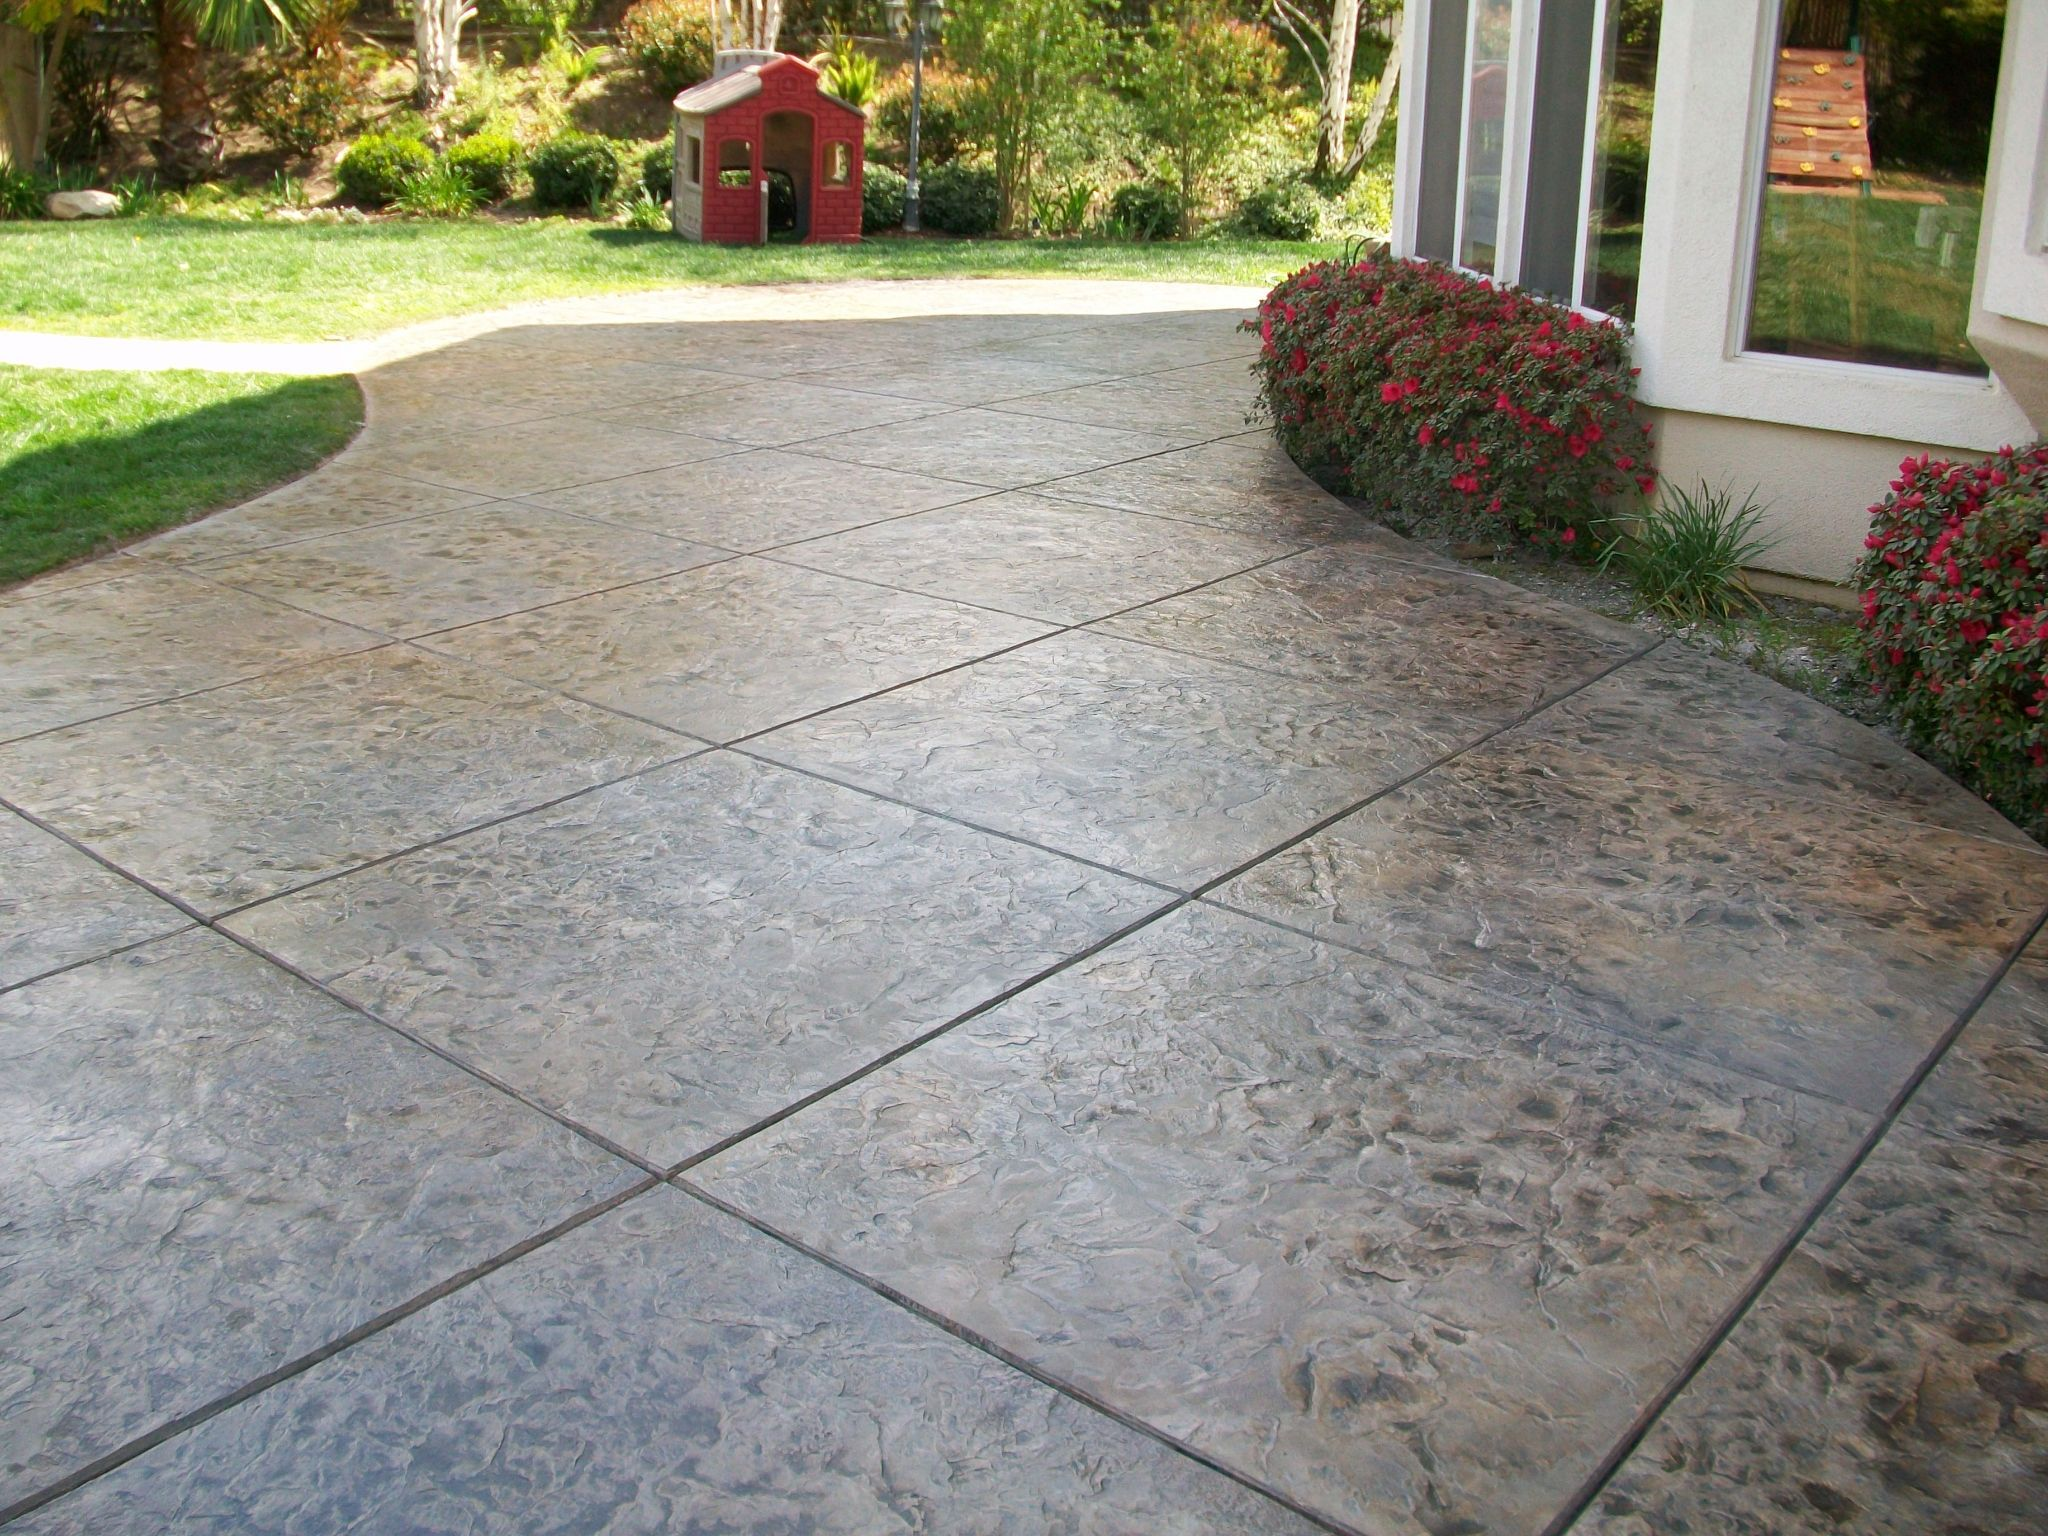 Stamped Concrete Design Ideas stamped concrete ideas patios 25 best ideas about stamped concrete patios on pinterest stamped concrete concrete Price For Stamped Concrete Patio Marvelous 1000 Images About Stamped Concrete On Pinterest Stamped